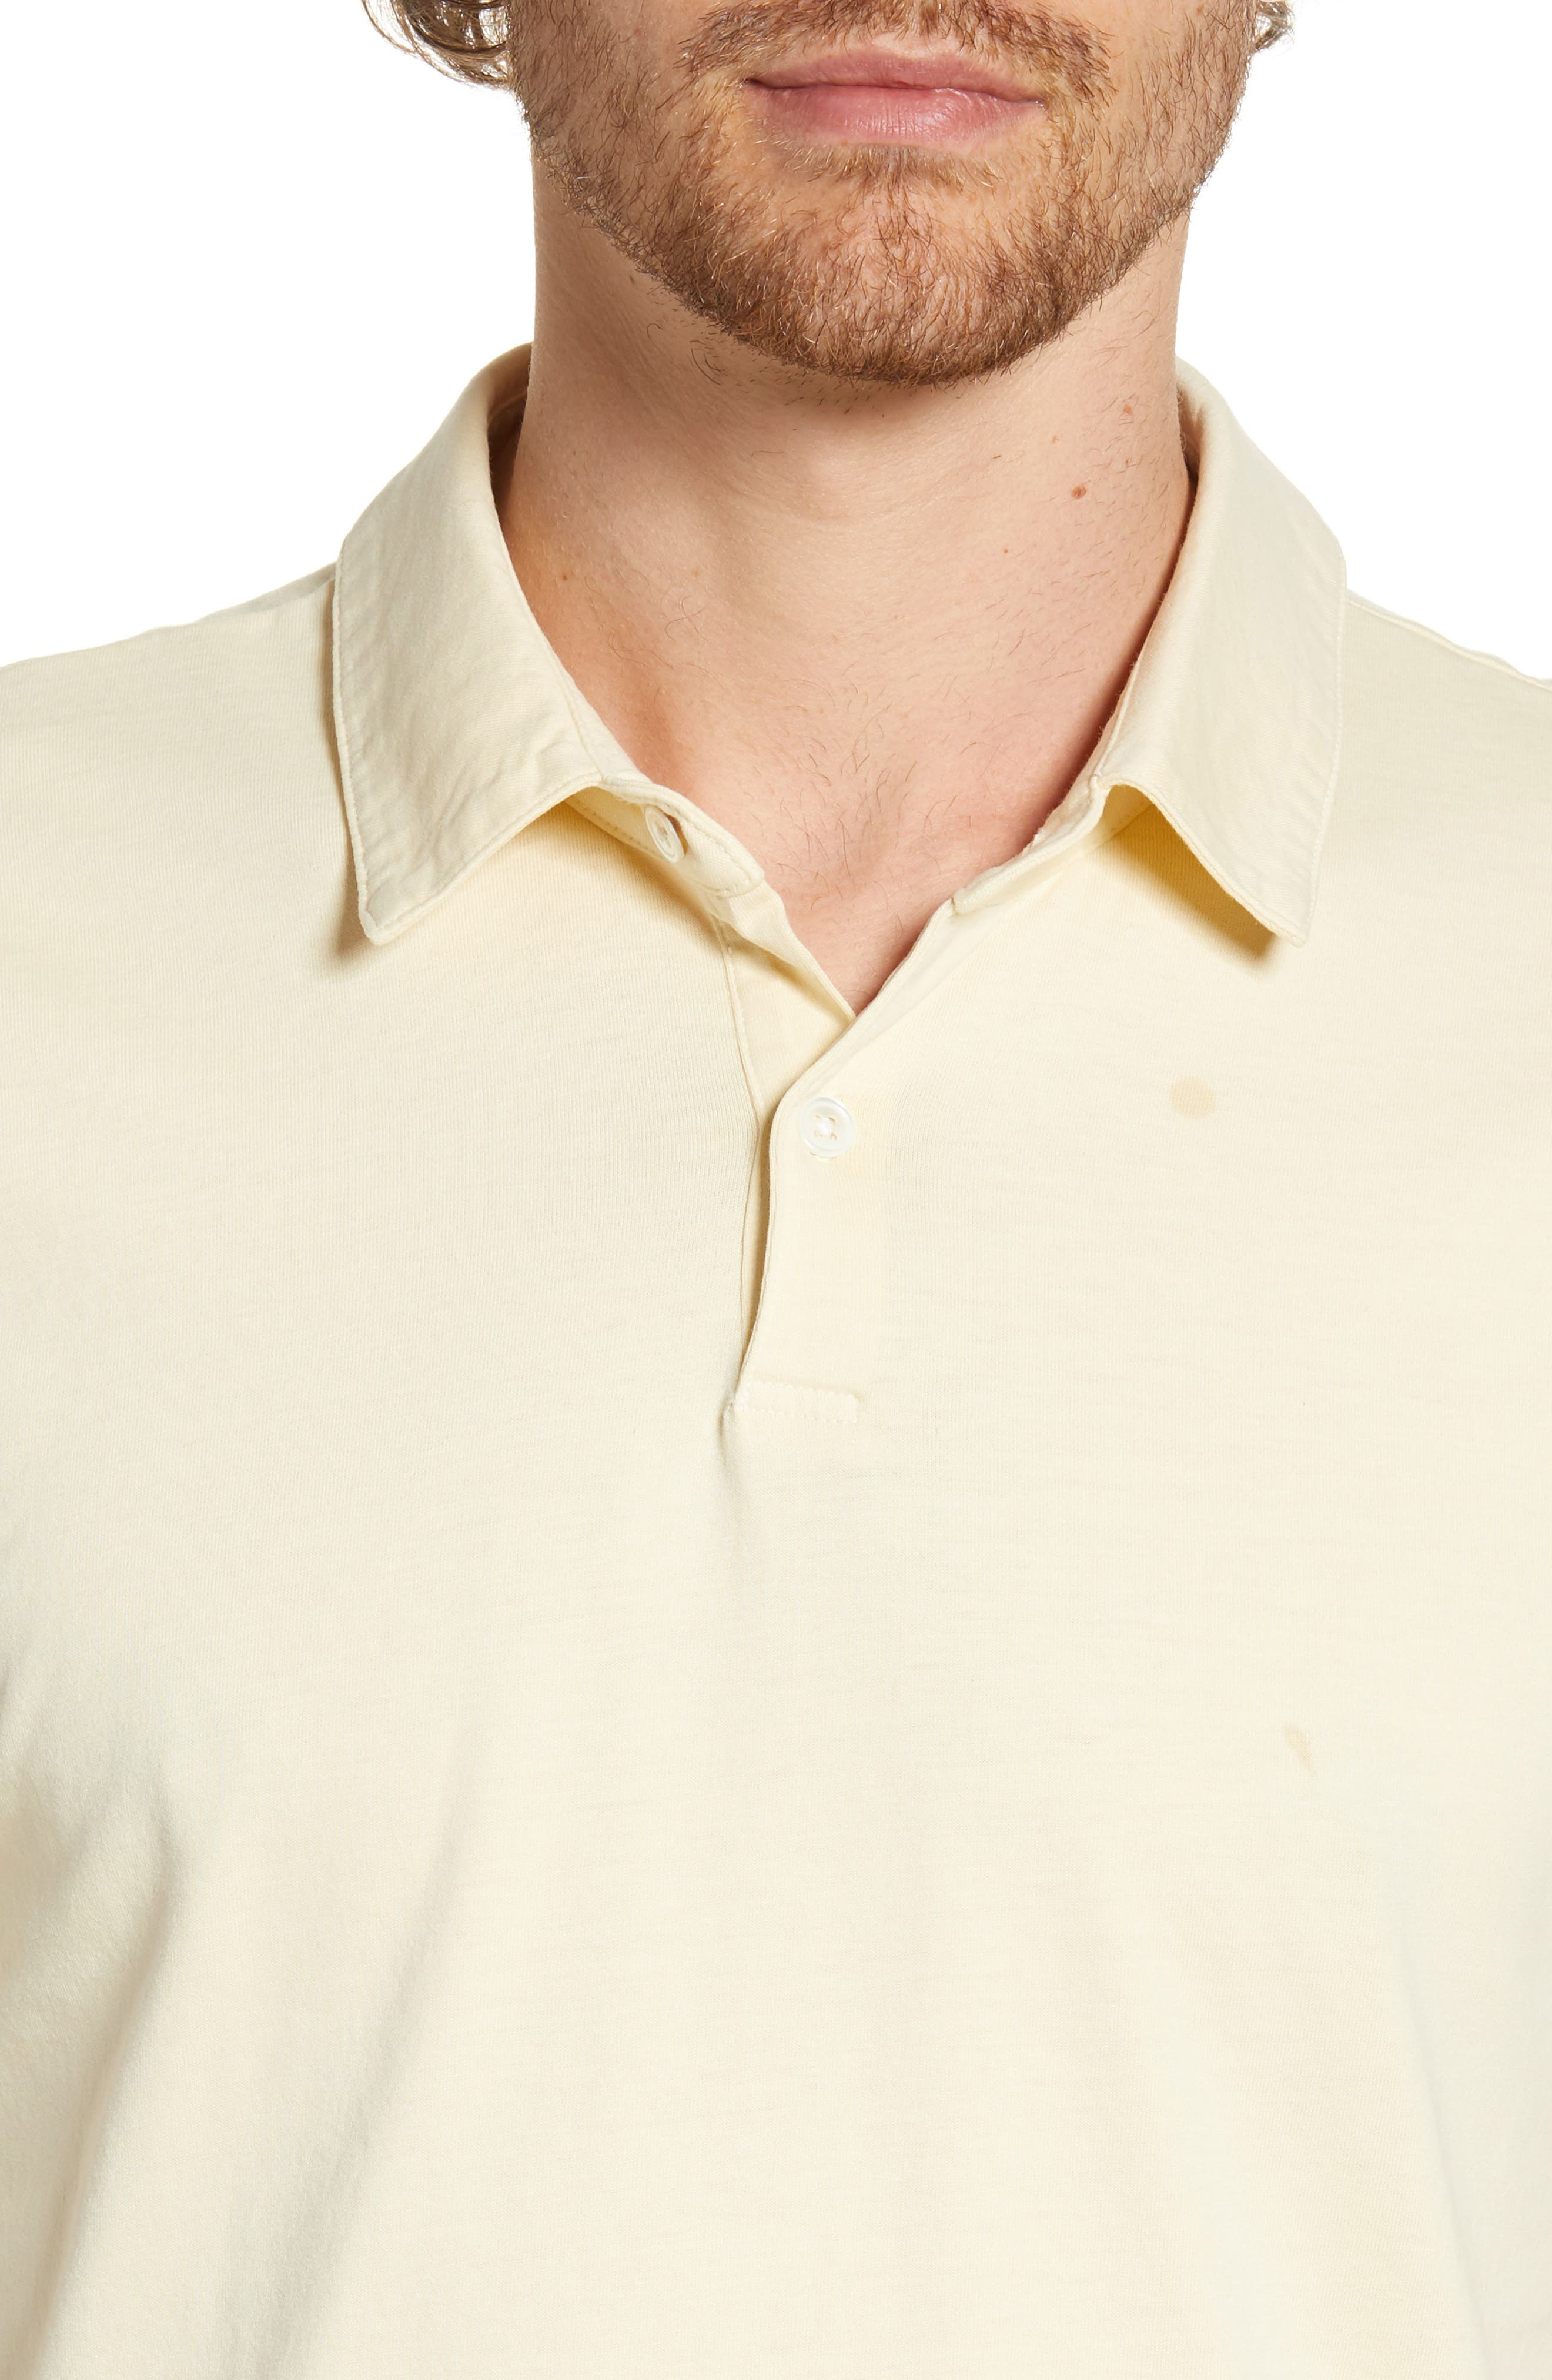 JAMES PERSE, Slim Fit Sueded Jersey Polo, Alternate thumbnail 4, color, GESSO